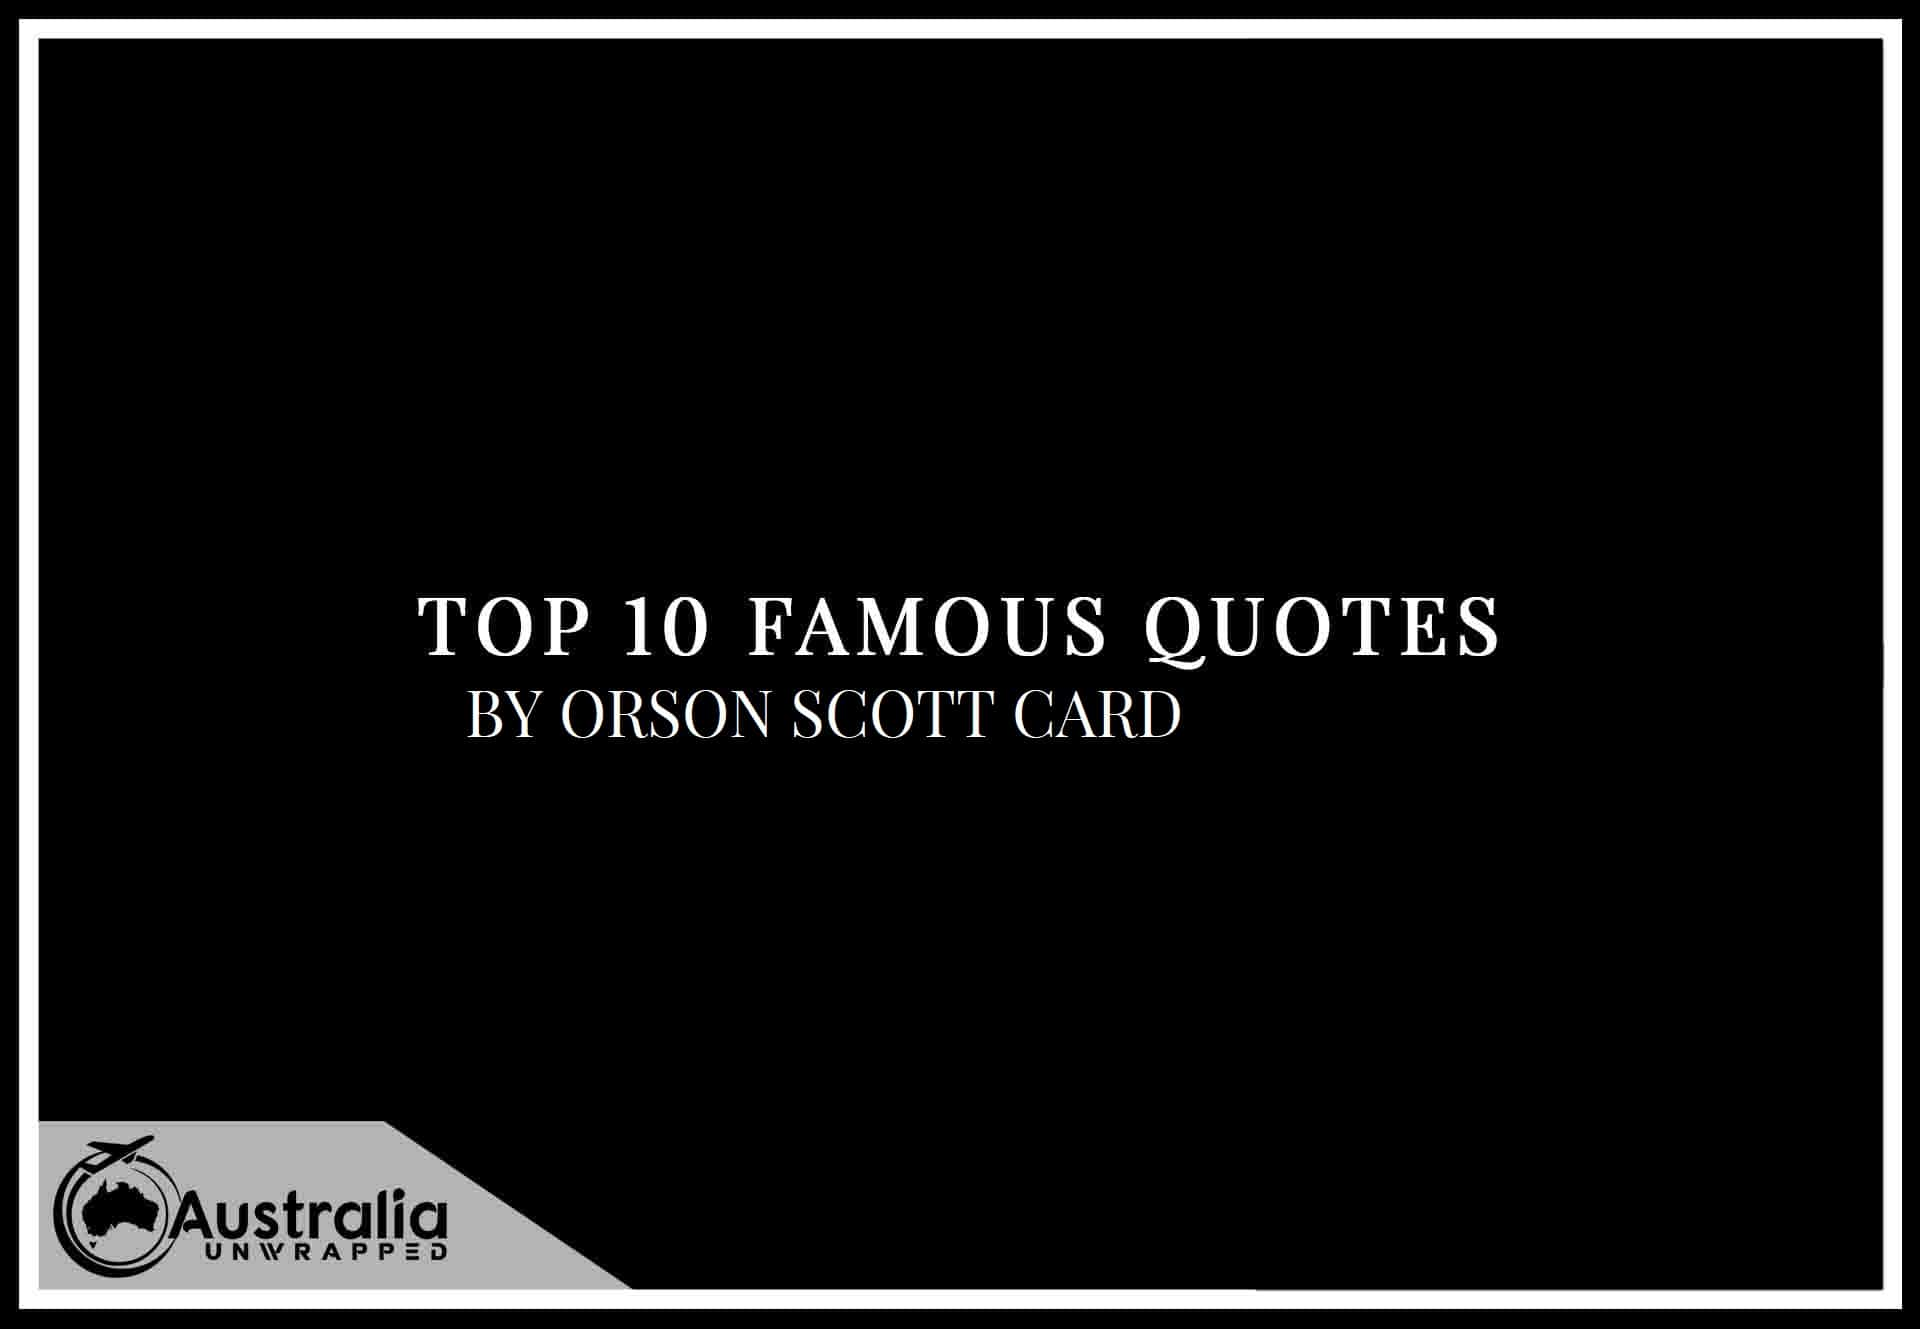 Top 10 Famous Quotes by Author Orson Scott Card